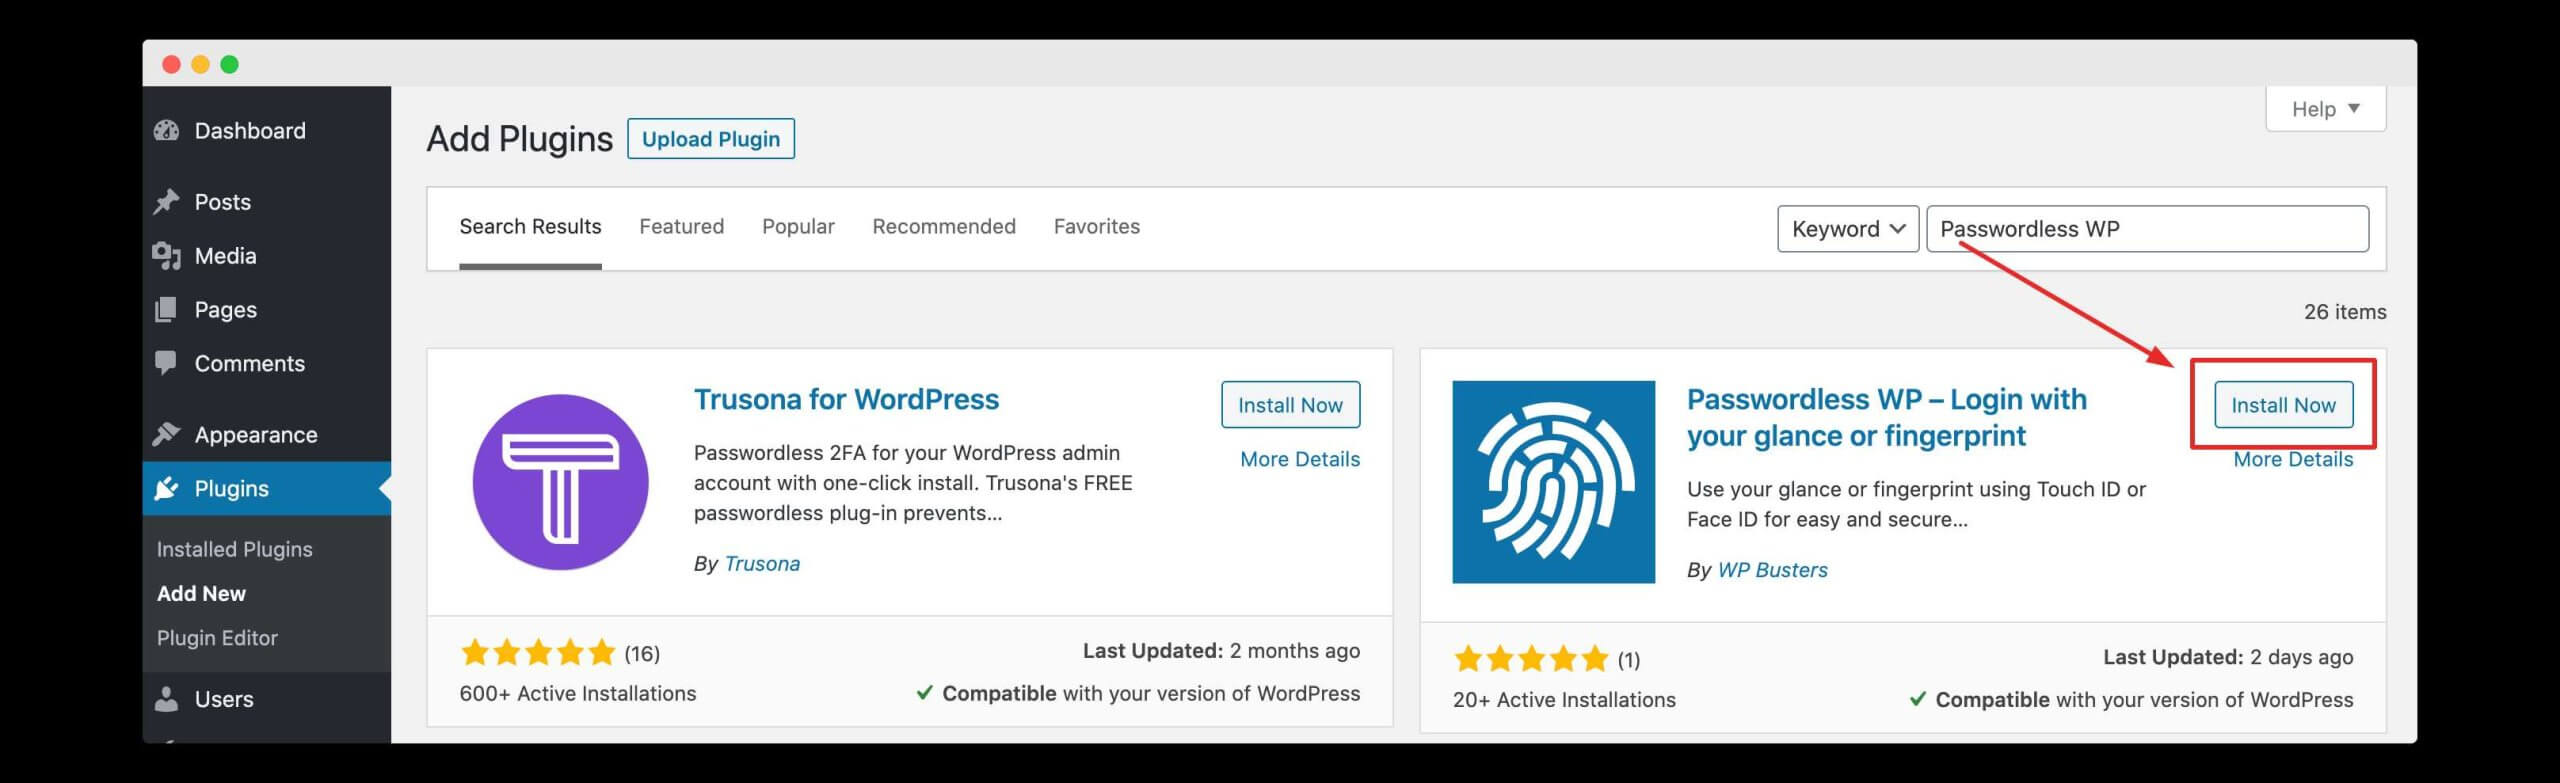 """searching for the """"passwordless wp"""" plugin on wordpress"""